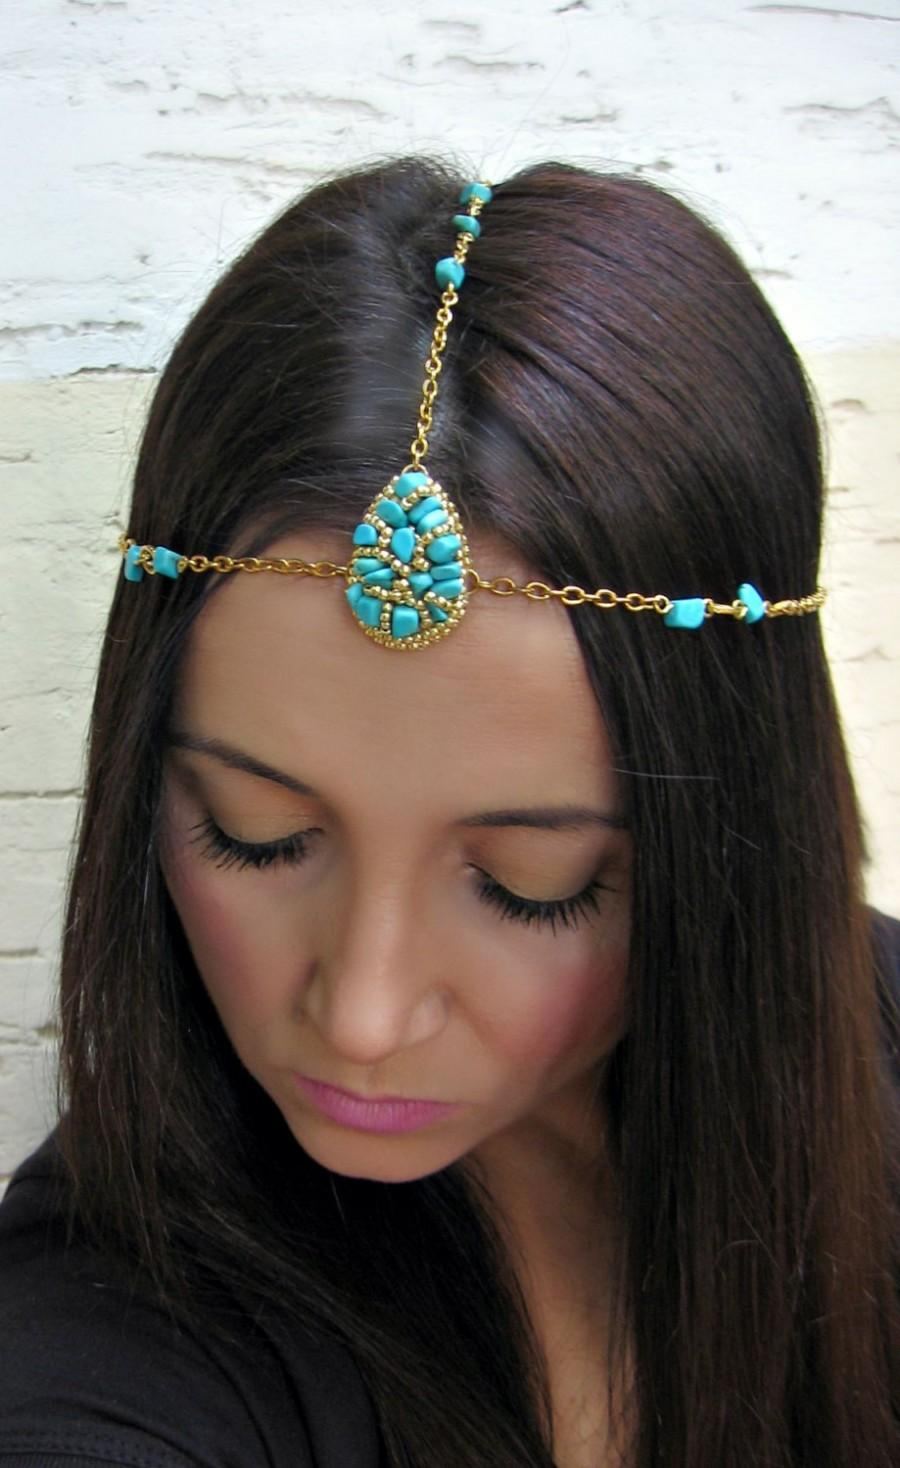 Bridal Bohemian Headdress Wedding Turquoise Hair Chain